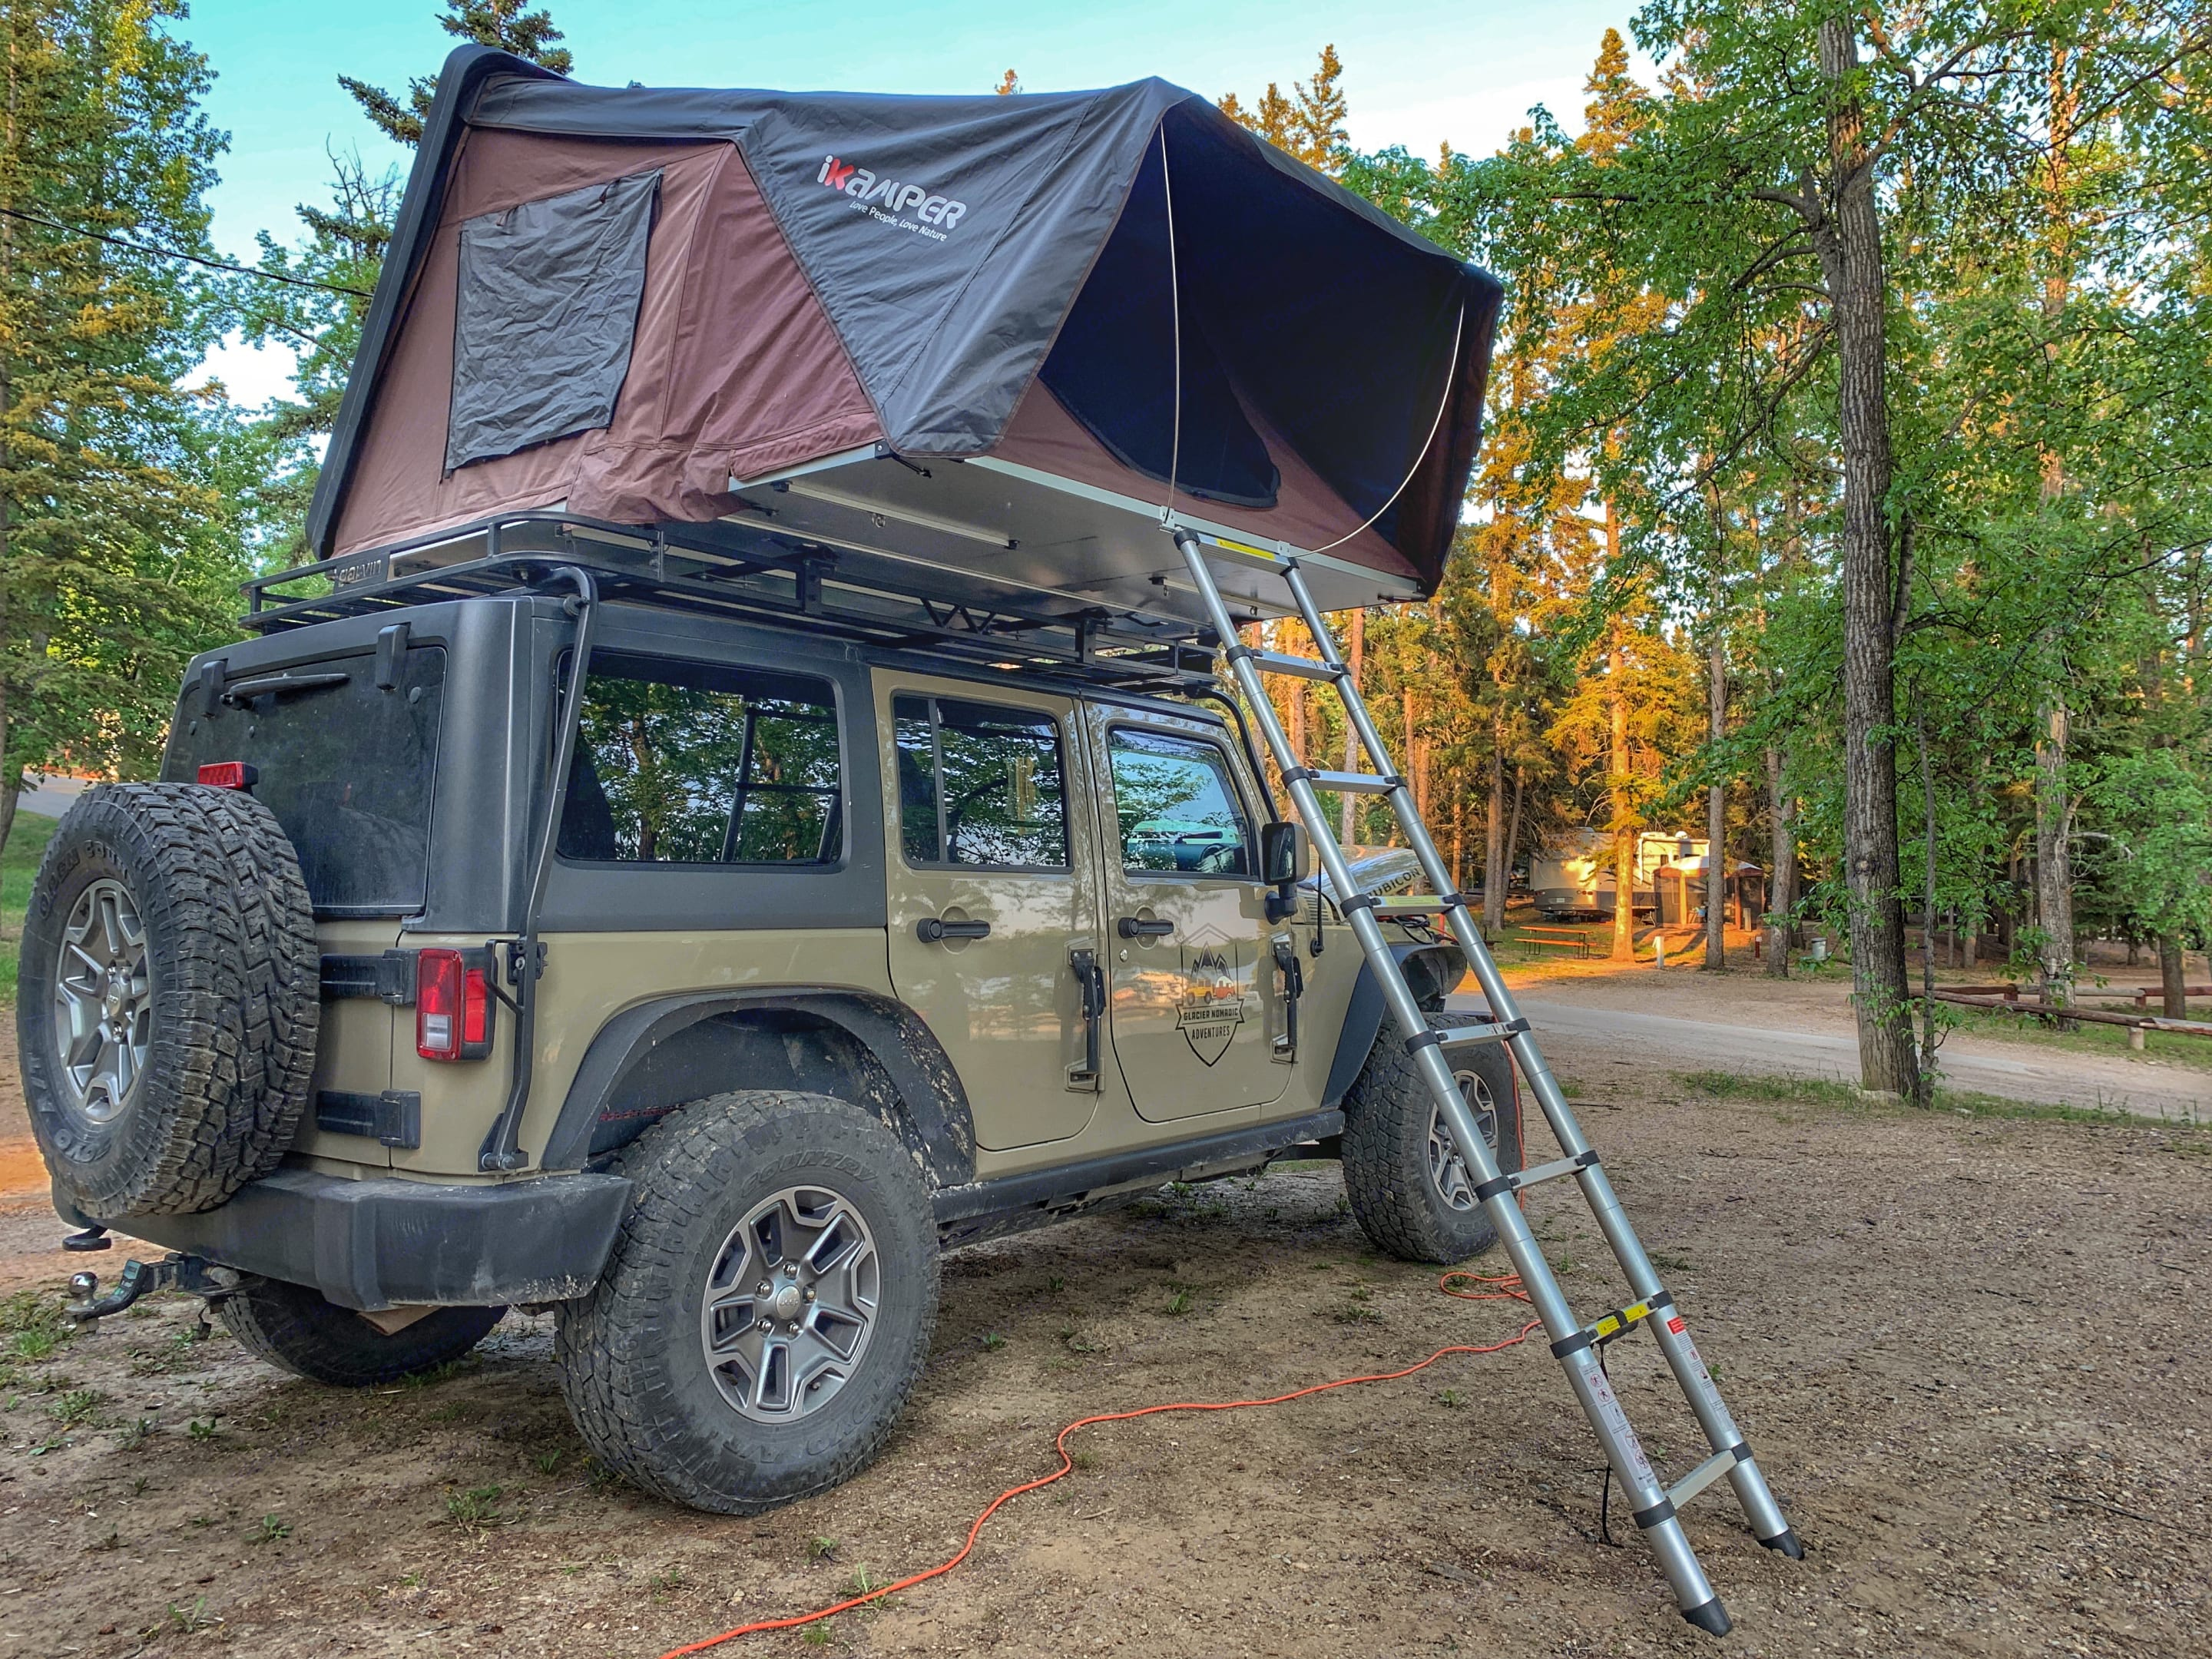 Setup is as easy as unlocking and deploy. Never worry about finding a camp sight with our Jeep and iKamper combo.. Jeep Rubicon 2017